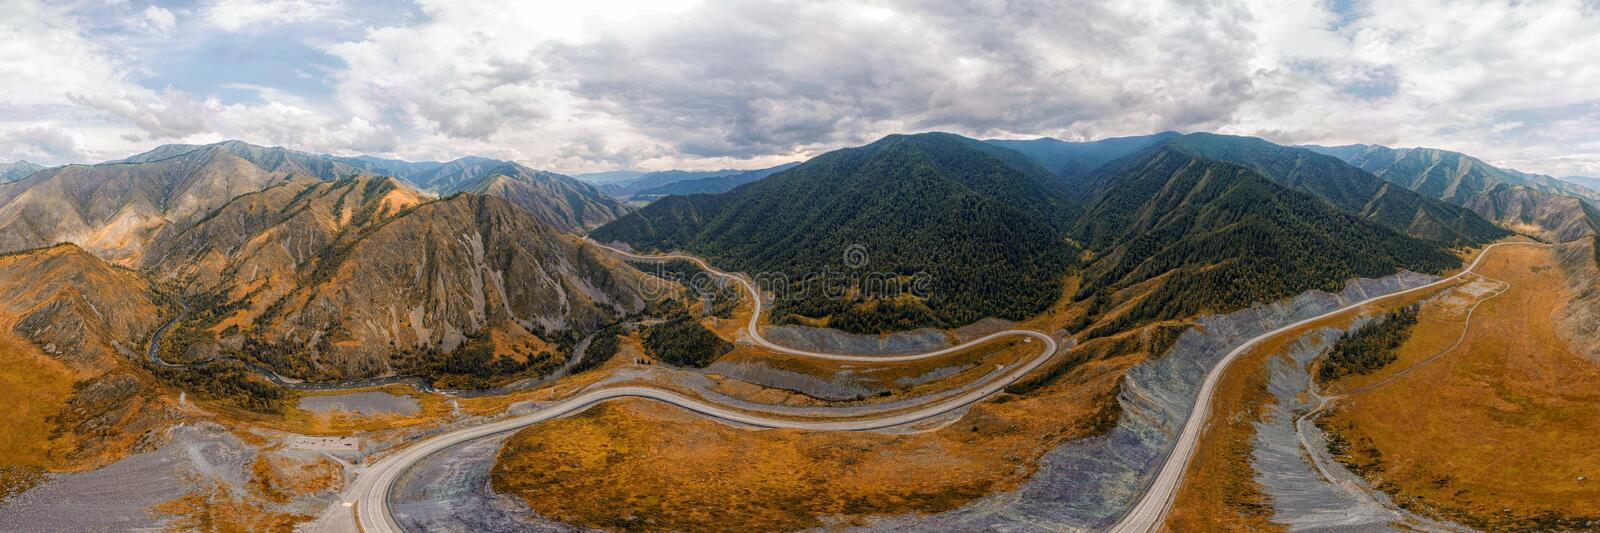 Stunning landscape of high mountains. Highway, coniferous forest on an autumn day. Photographing mountains with a quadrocopter stock images